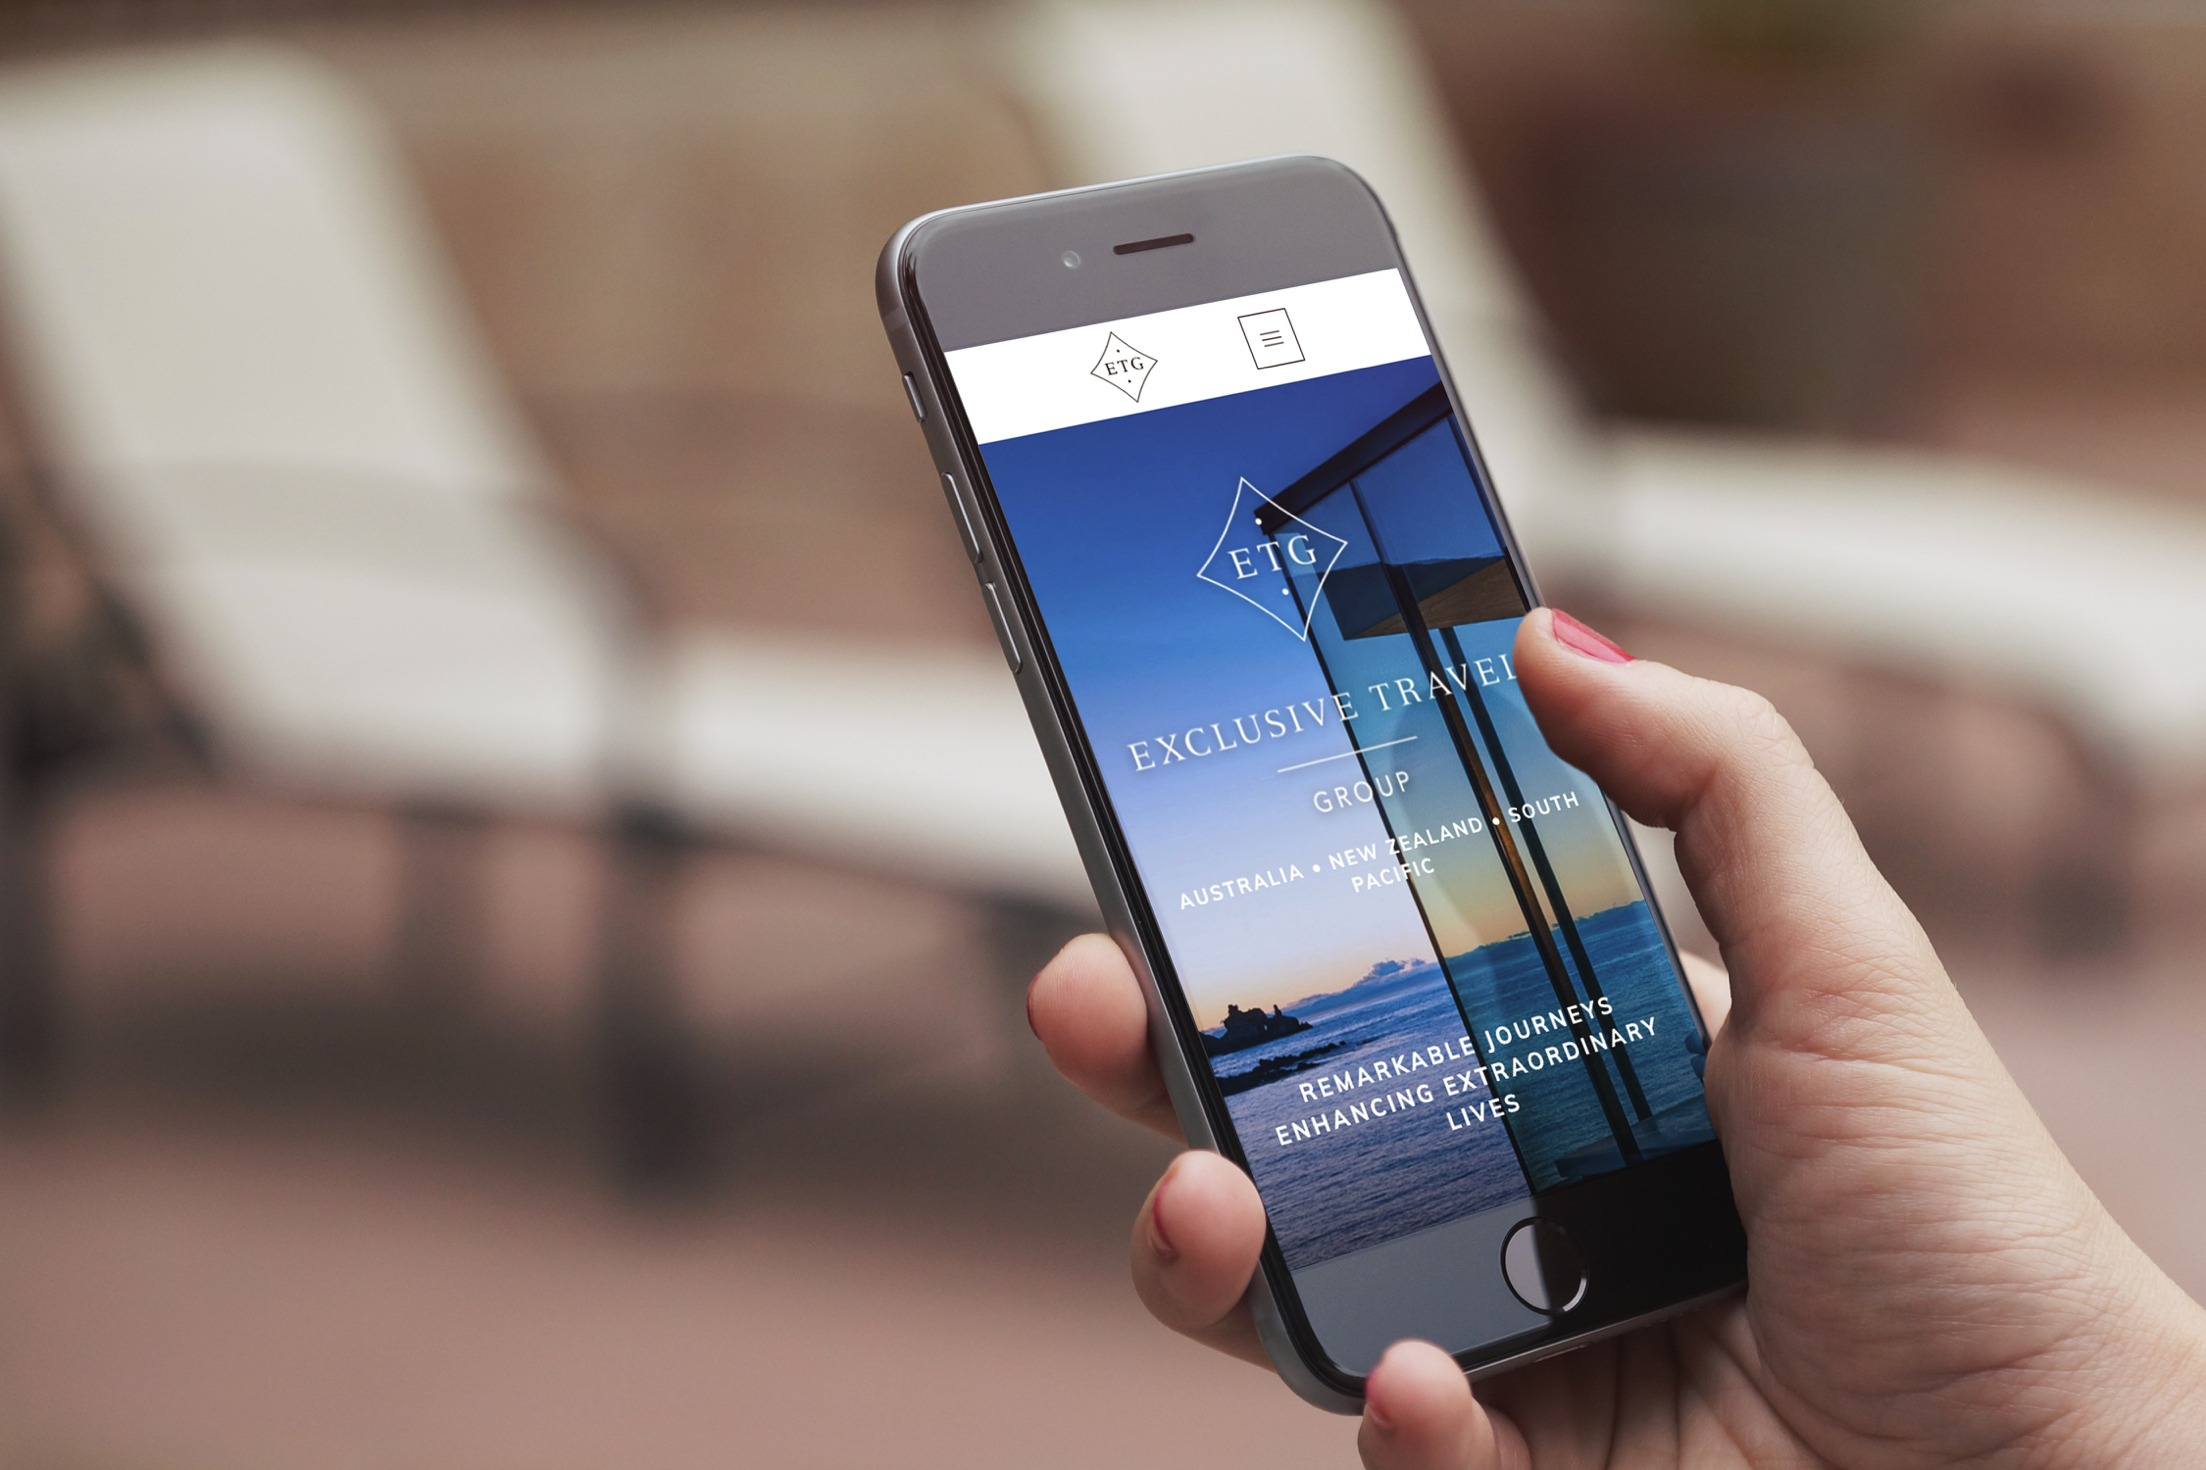 Mobile - Exclusive Travel Group